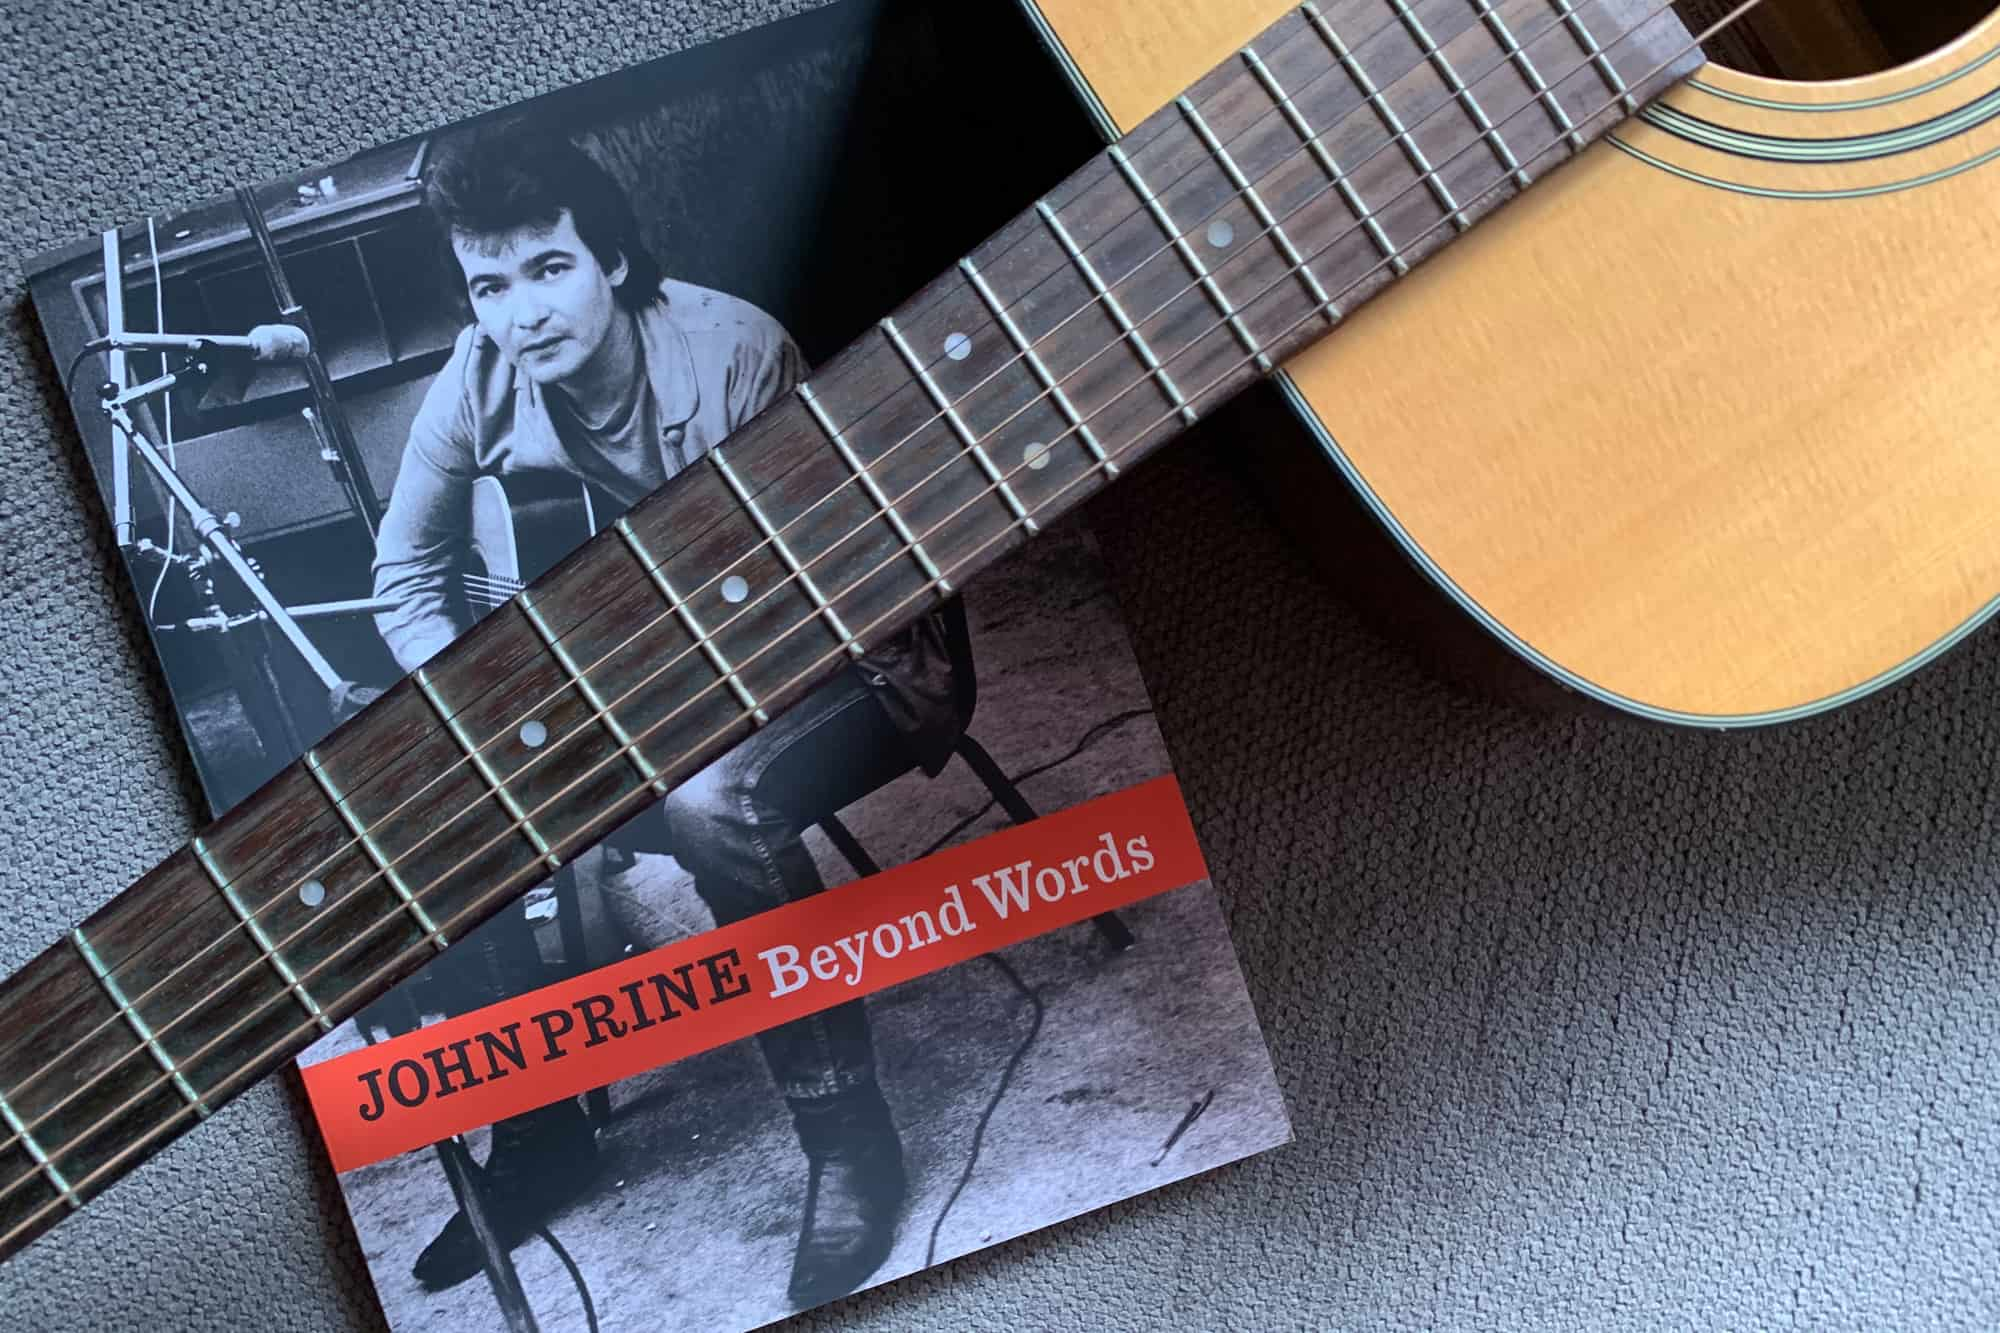 Portrait of John Prine book Beyond Words lying on short gray carpet with the neck of an acoustic guitar laying across